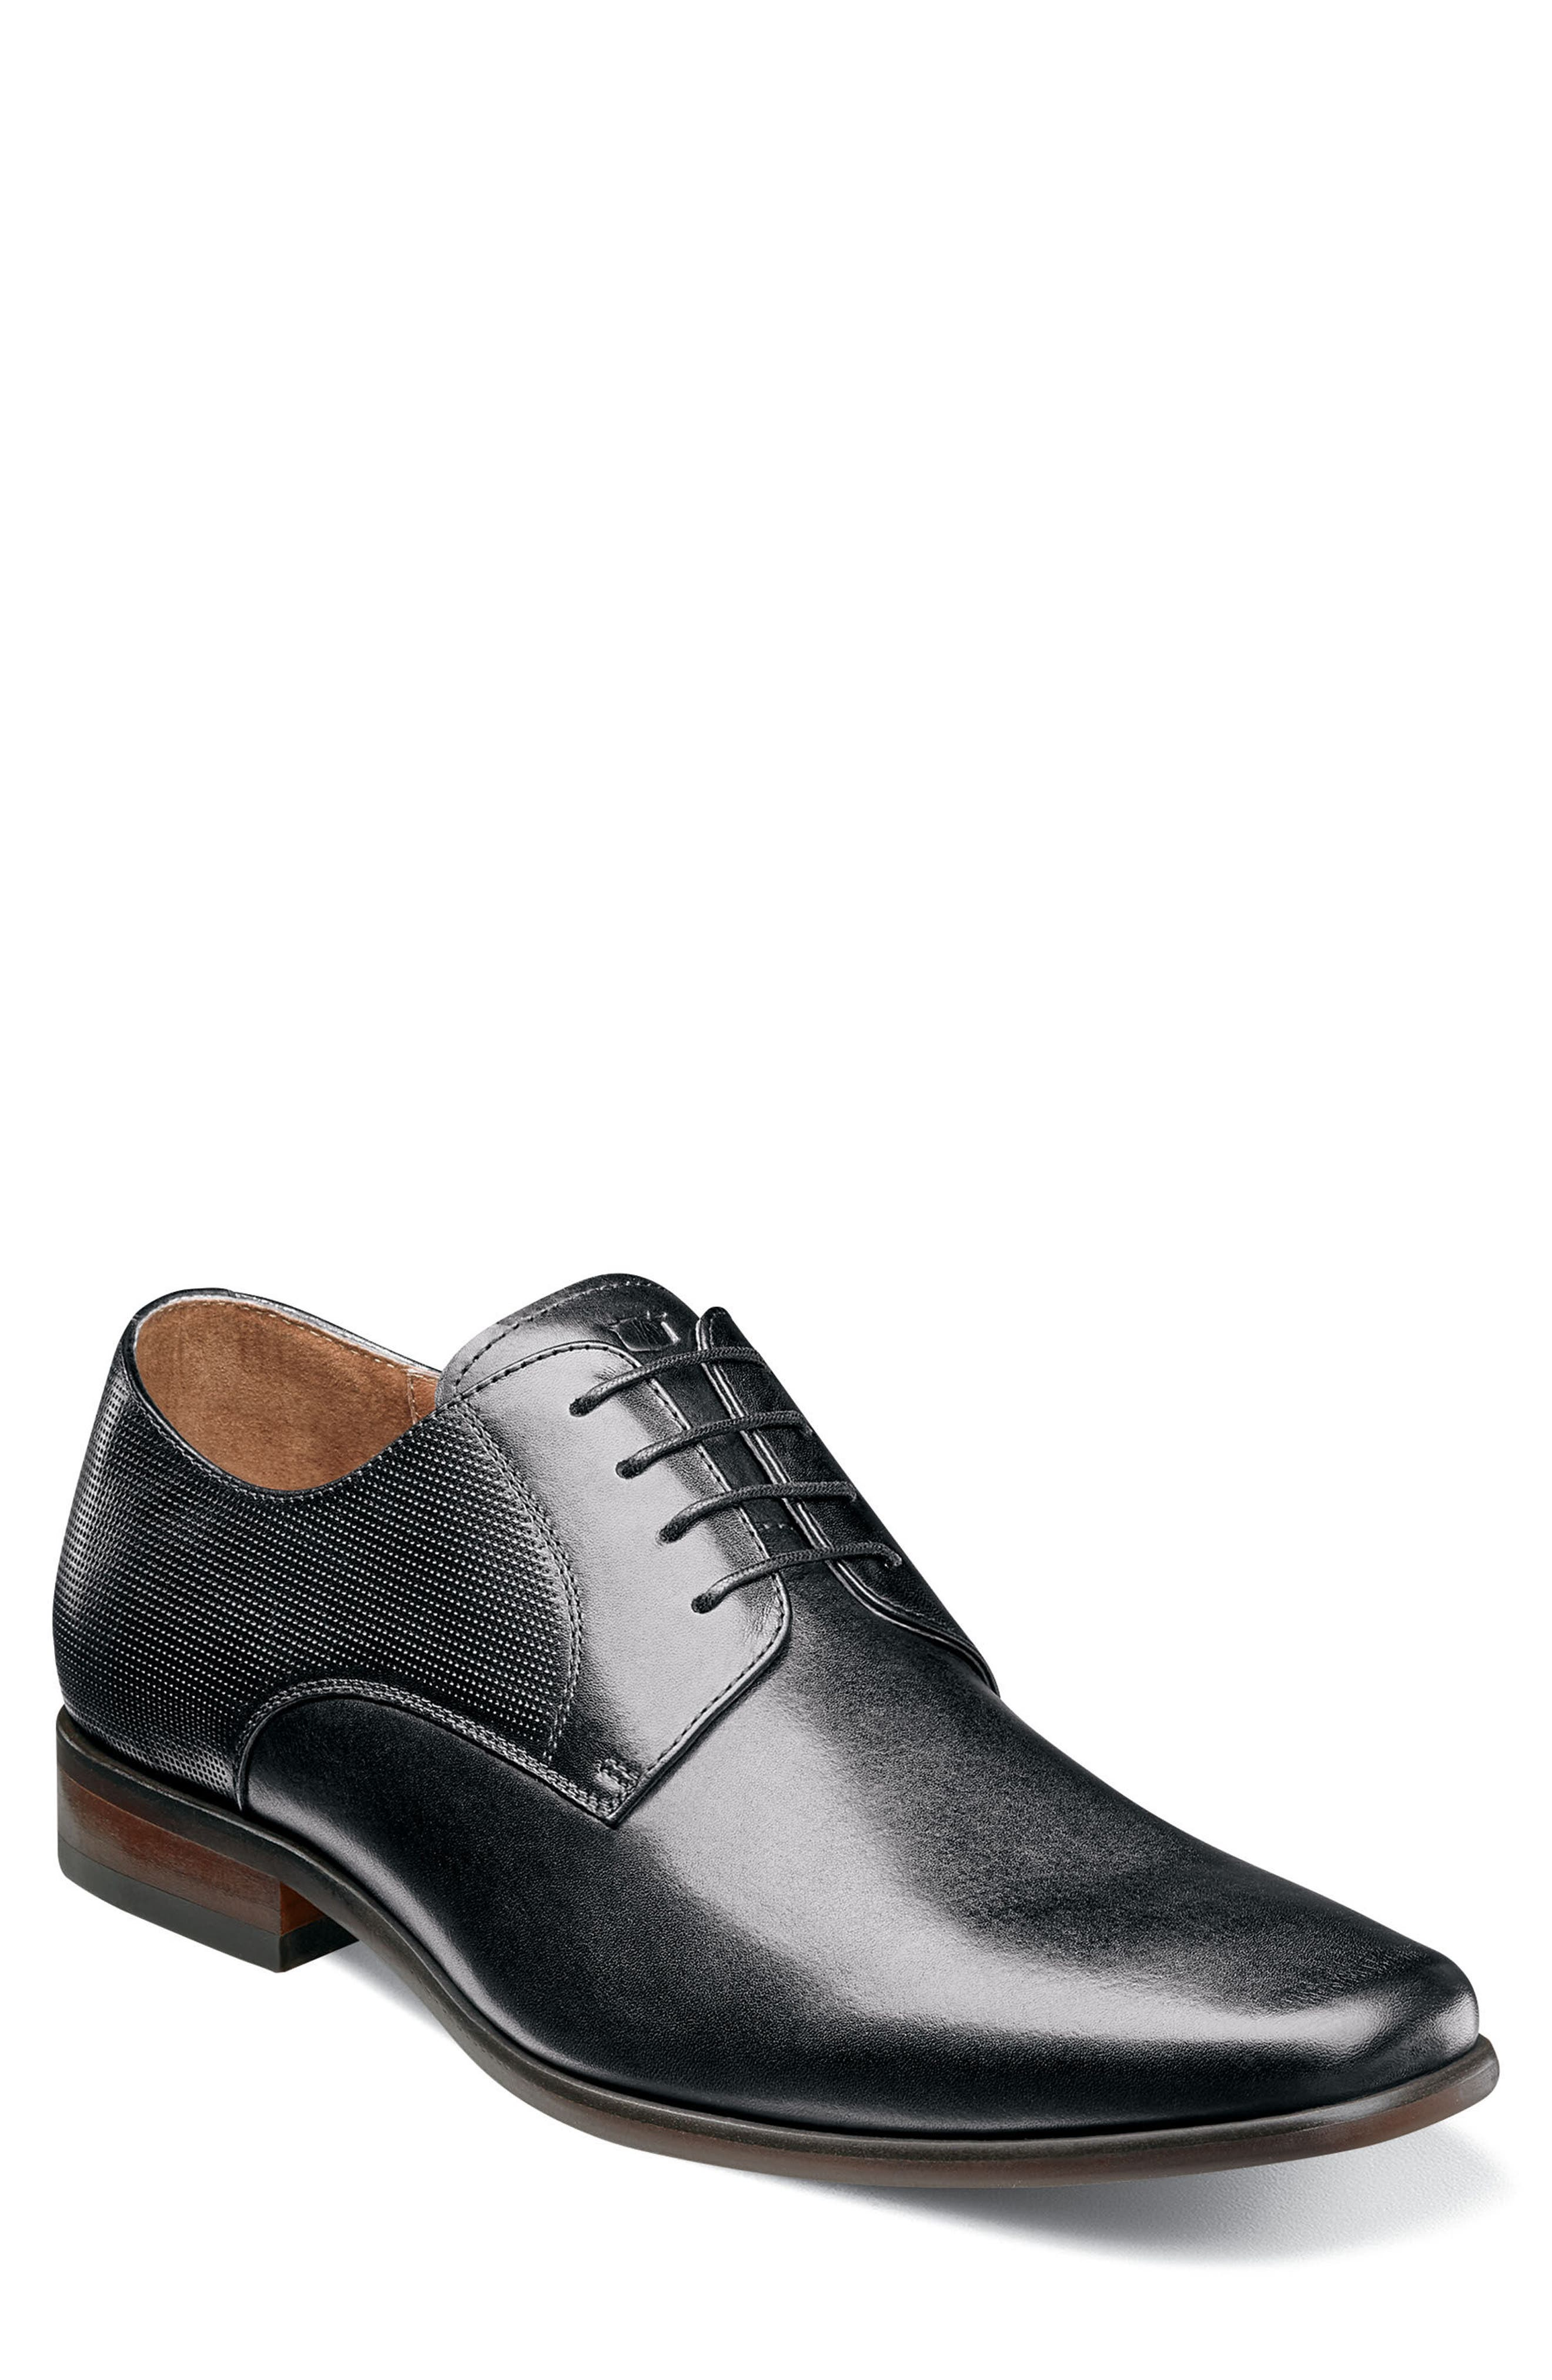 Postino Textured Plain Toe Derby,                             Main thumbnail 1, color,                             BLACK LEATHER